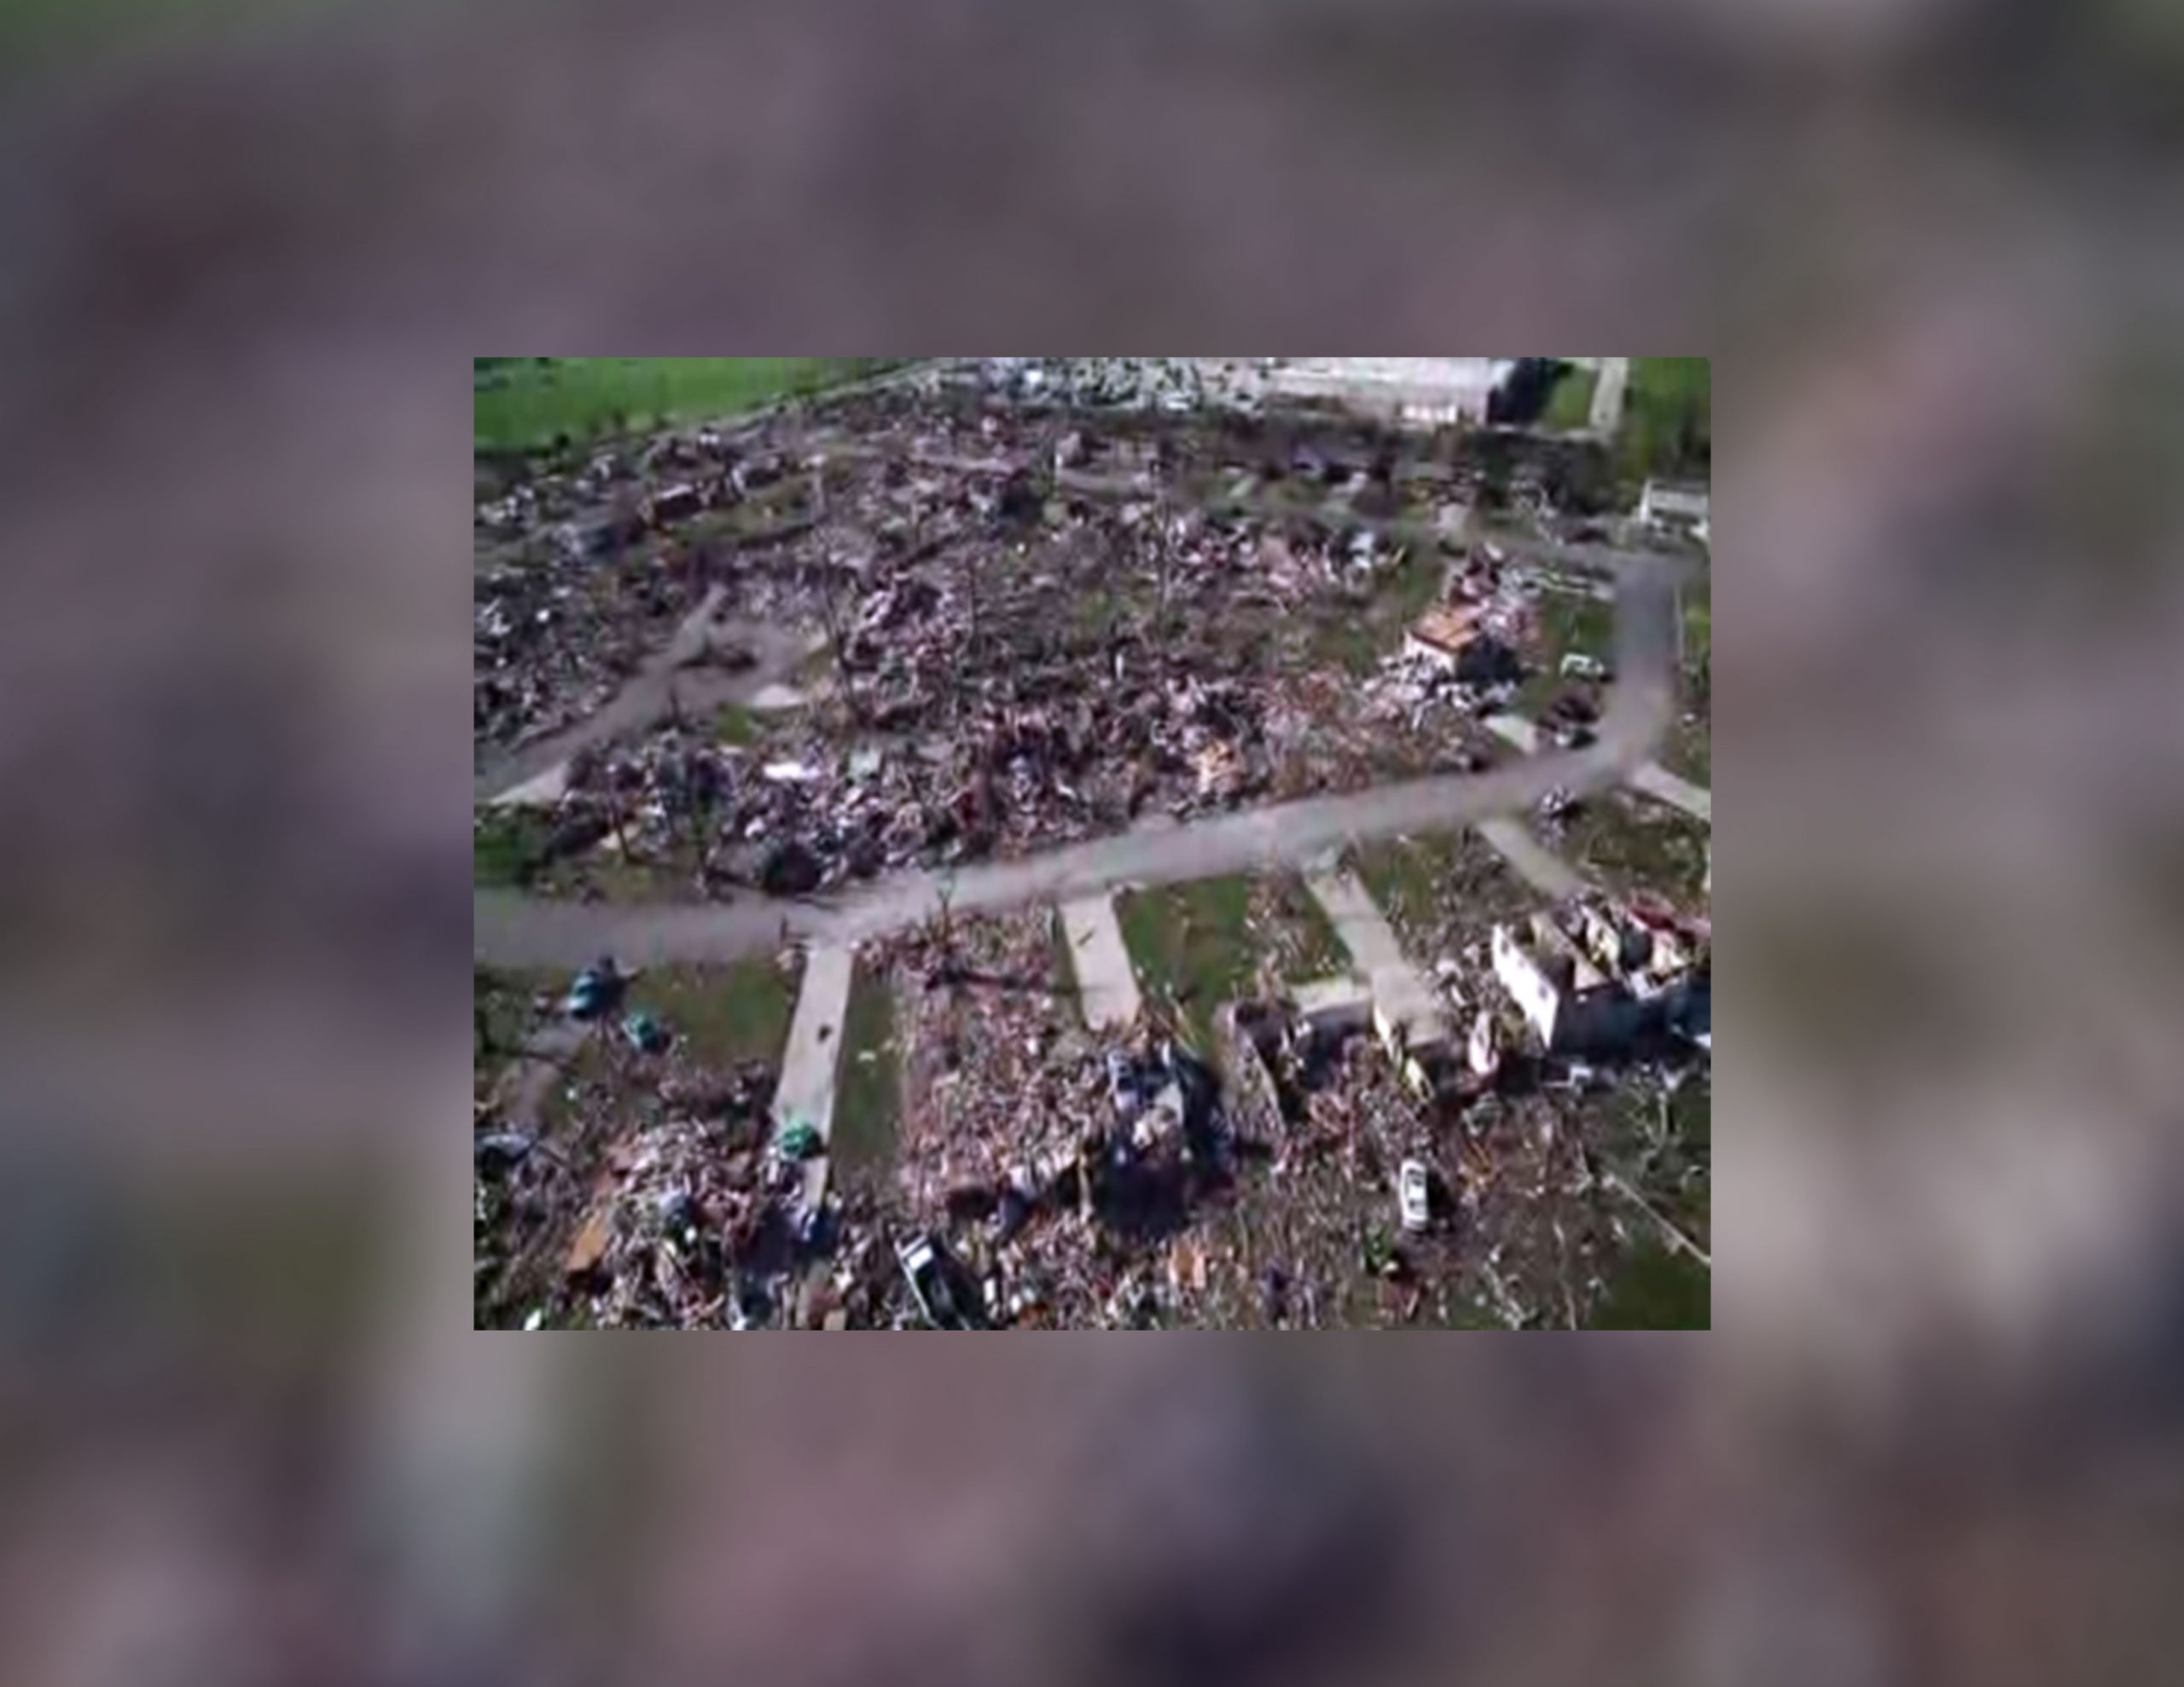 Deadly storms spawned more than 80 tornadoes in Midwest